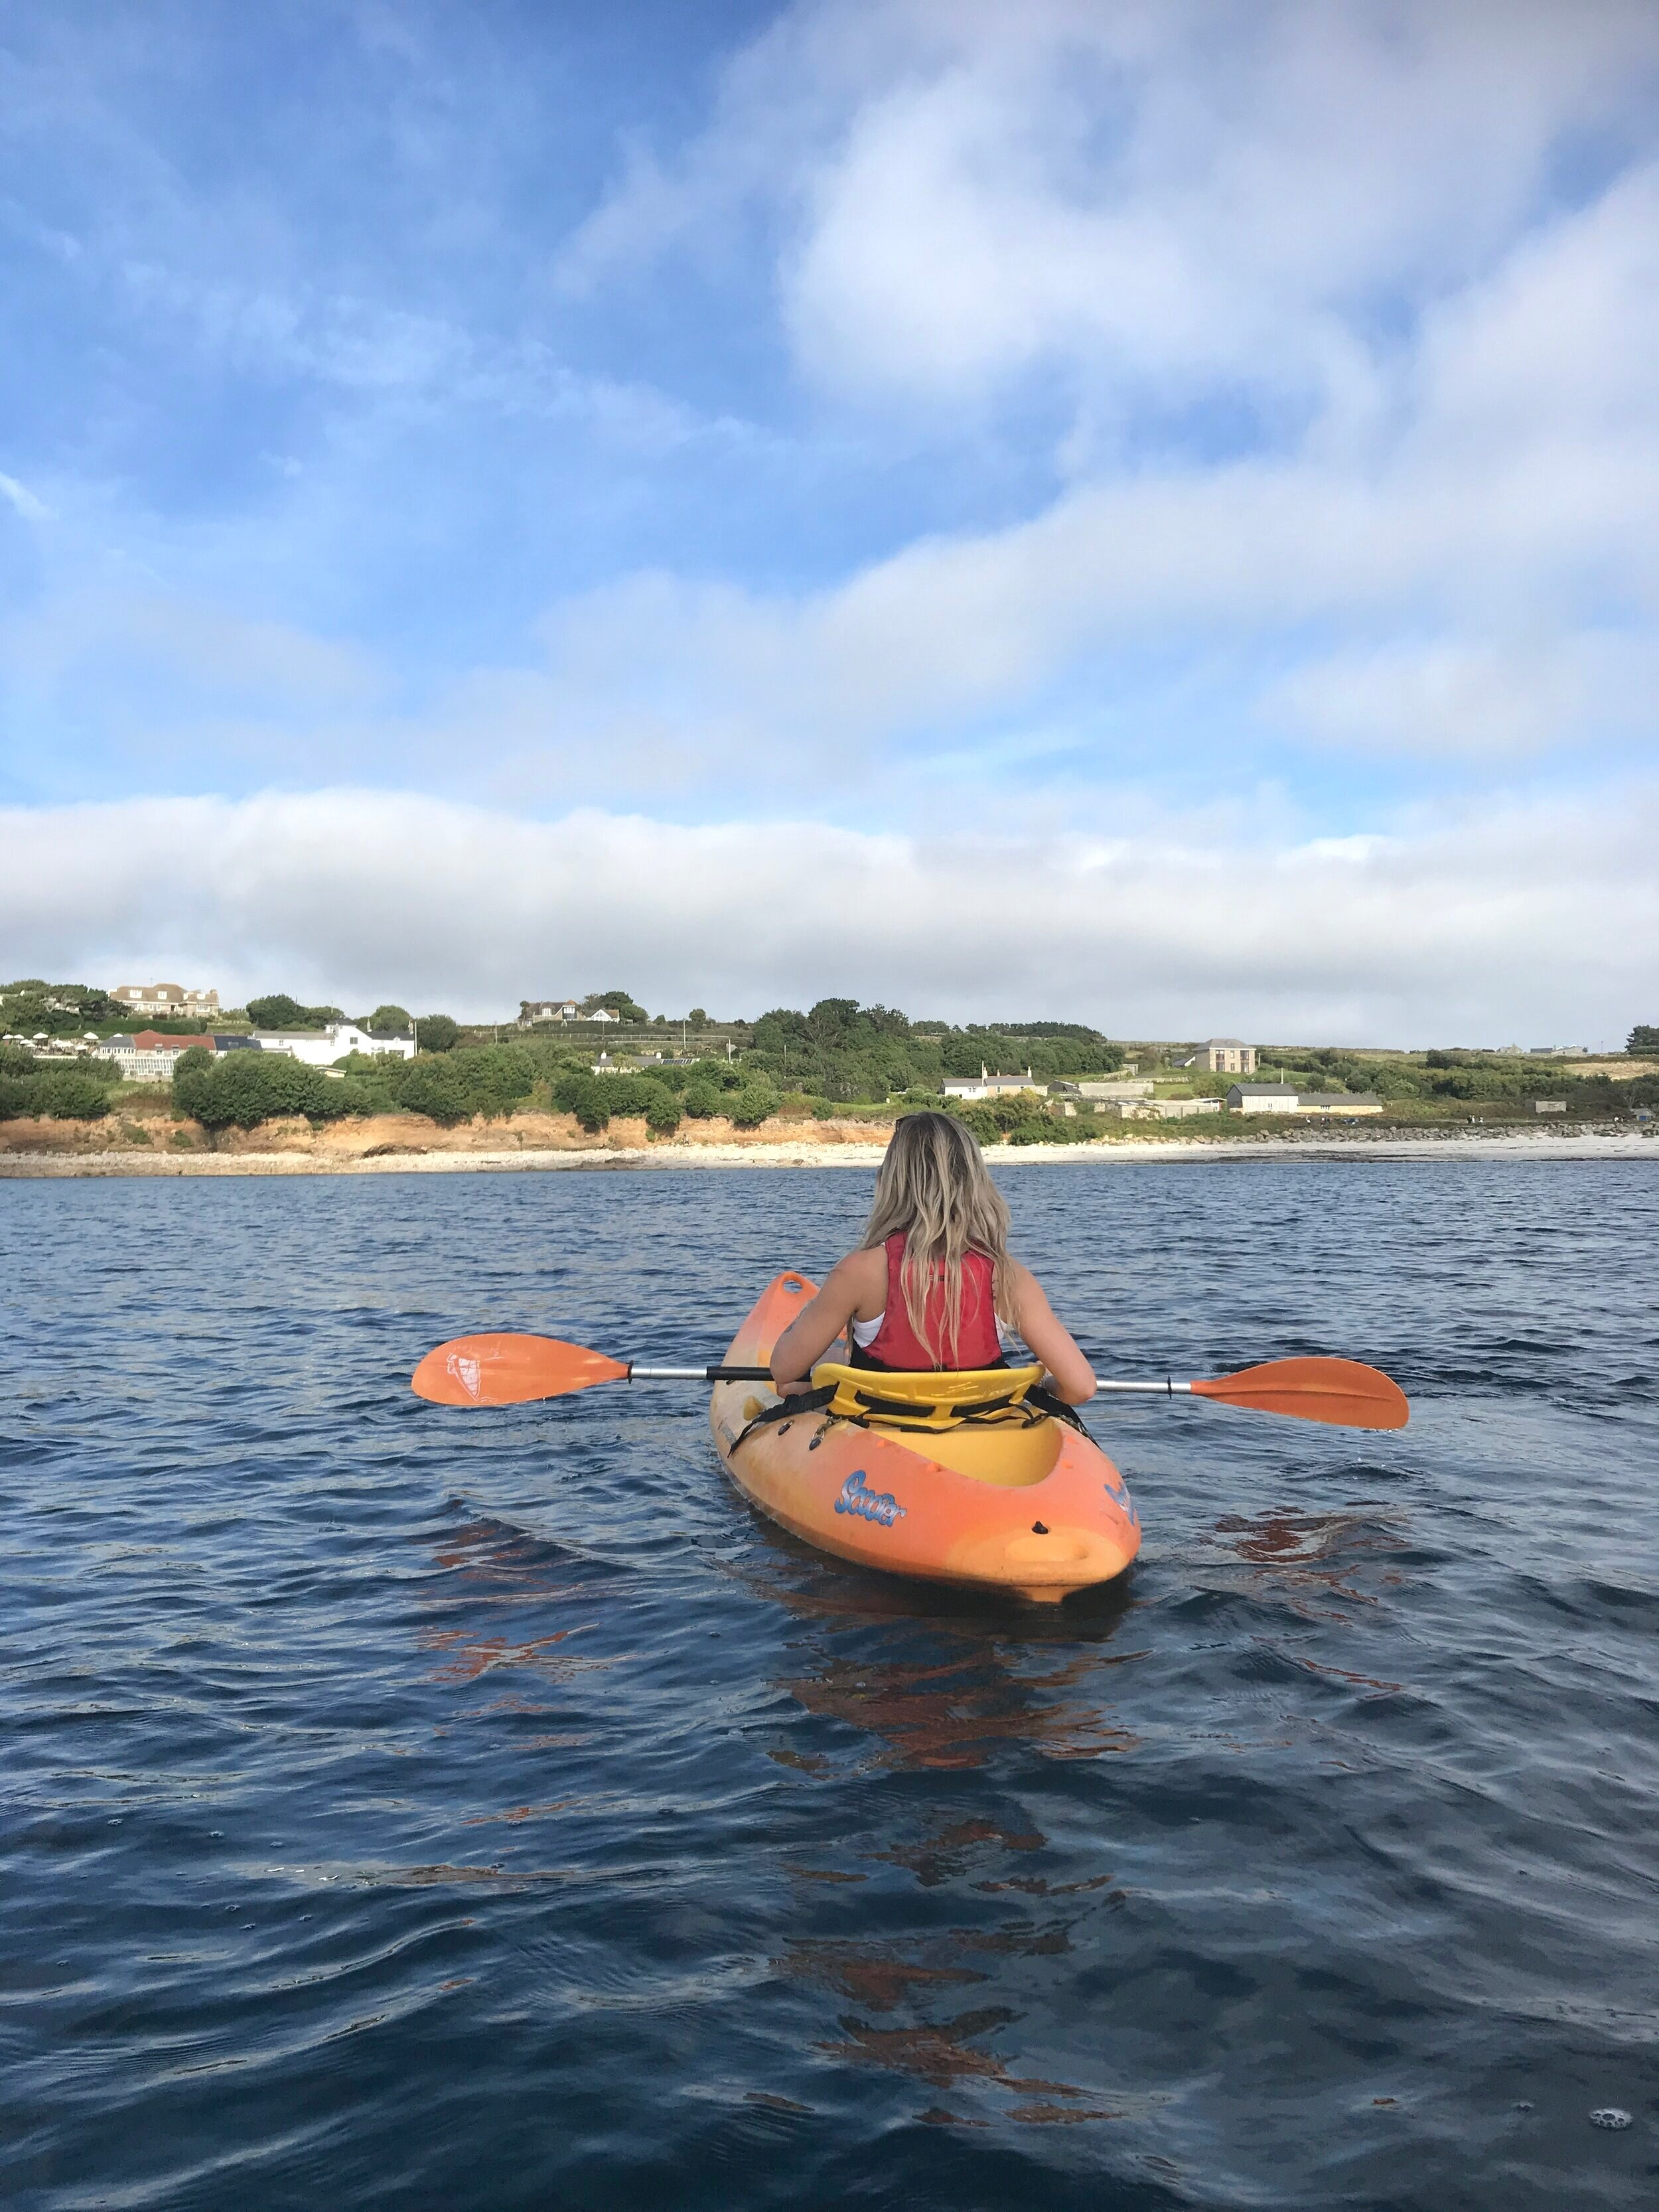 Kayaking+on+the+isles+of+scilly